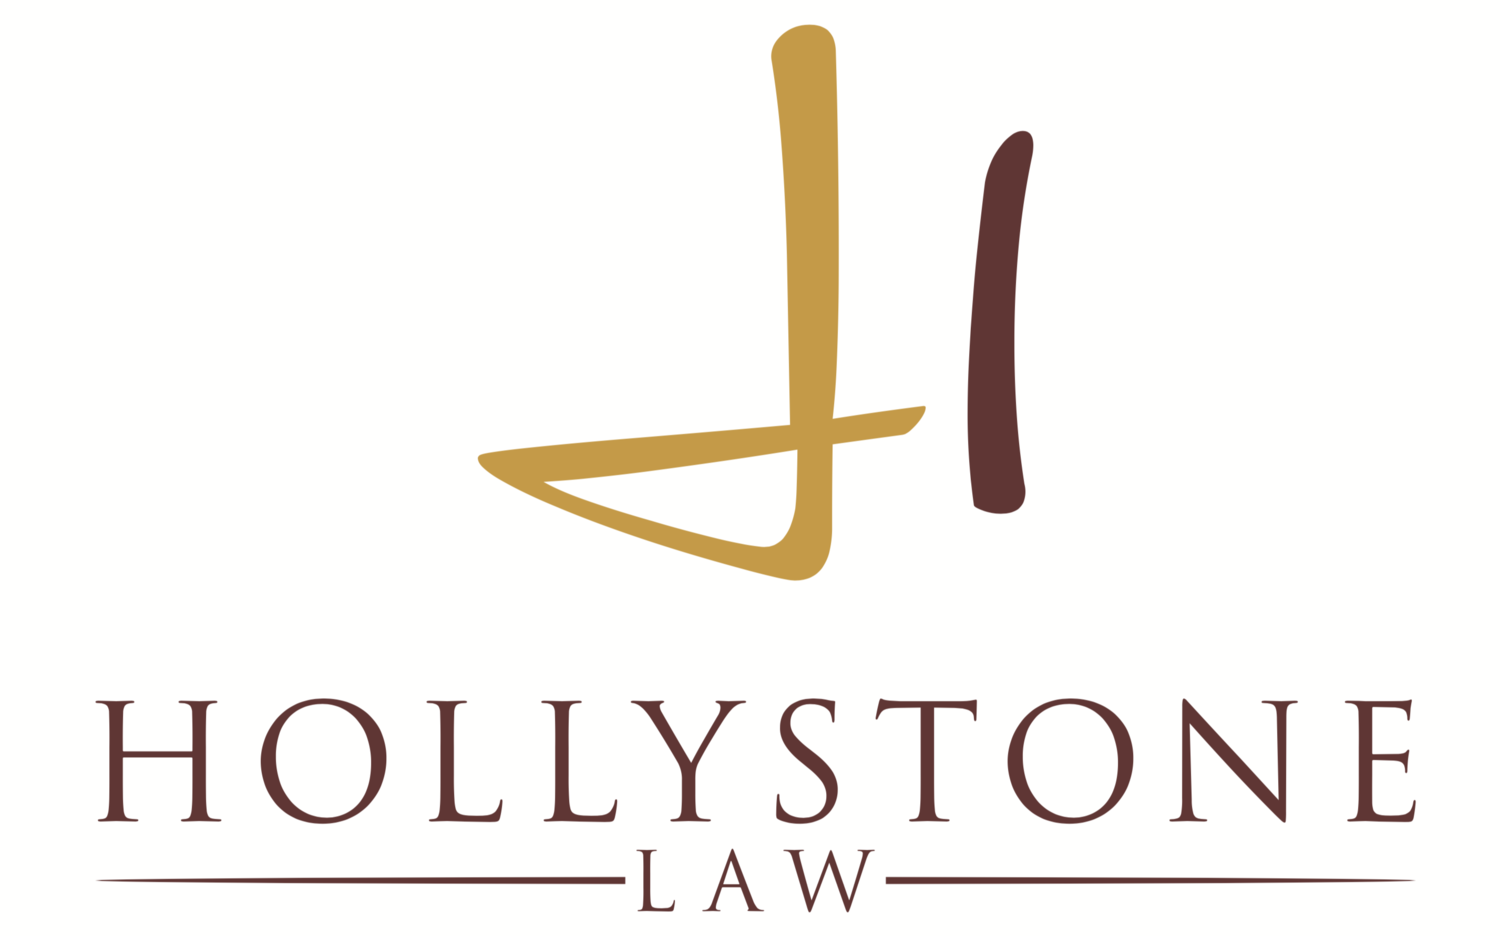 Hollystone Law